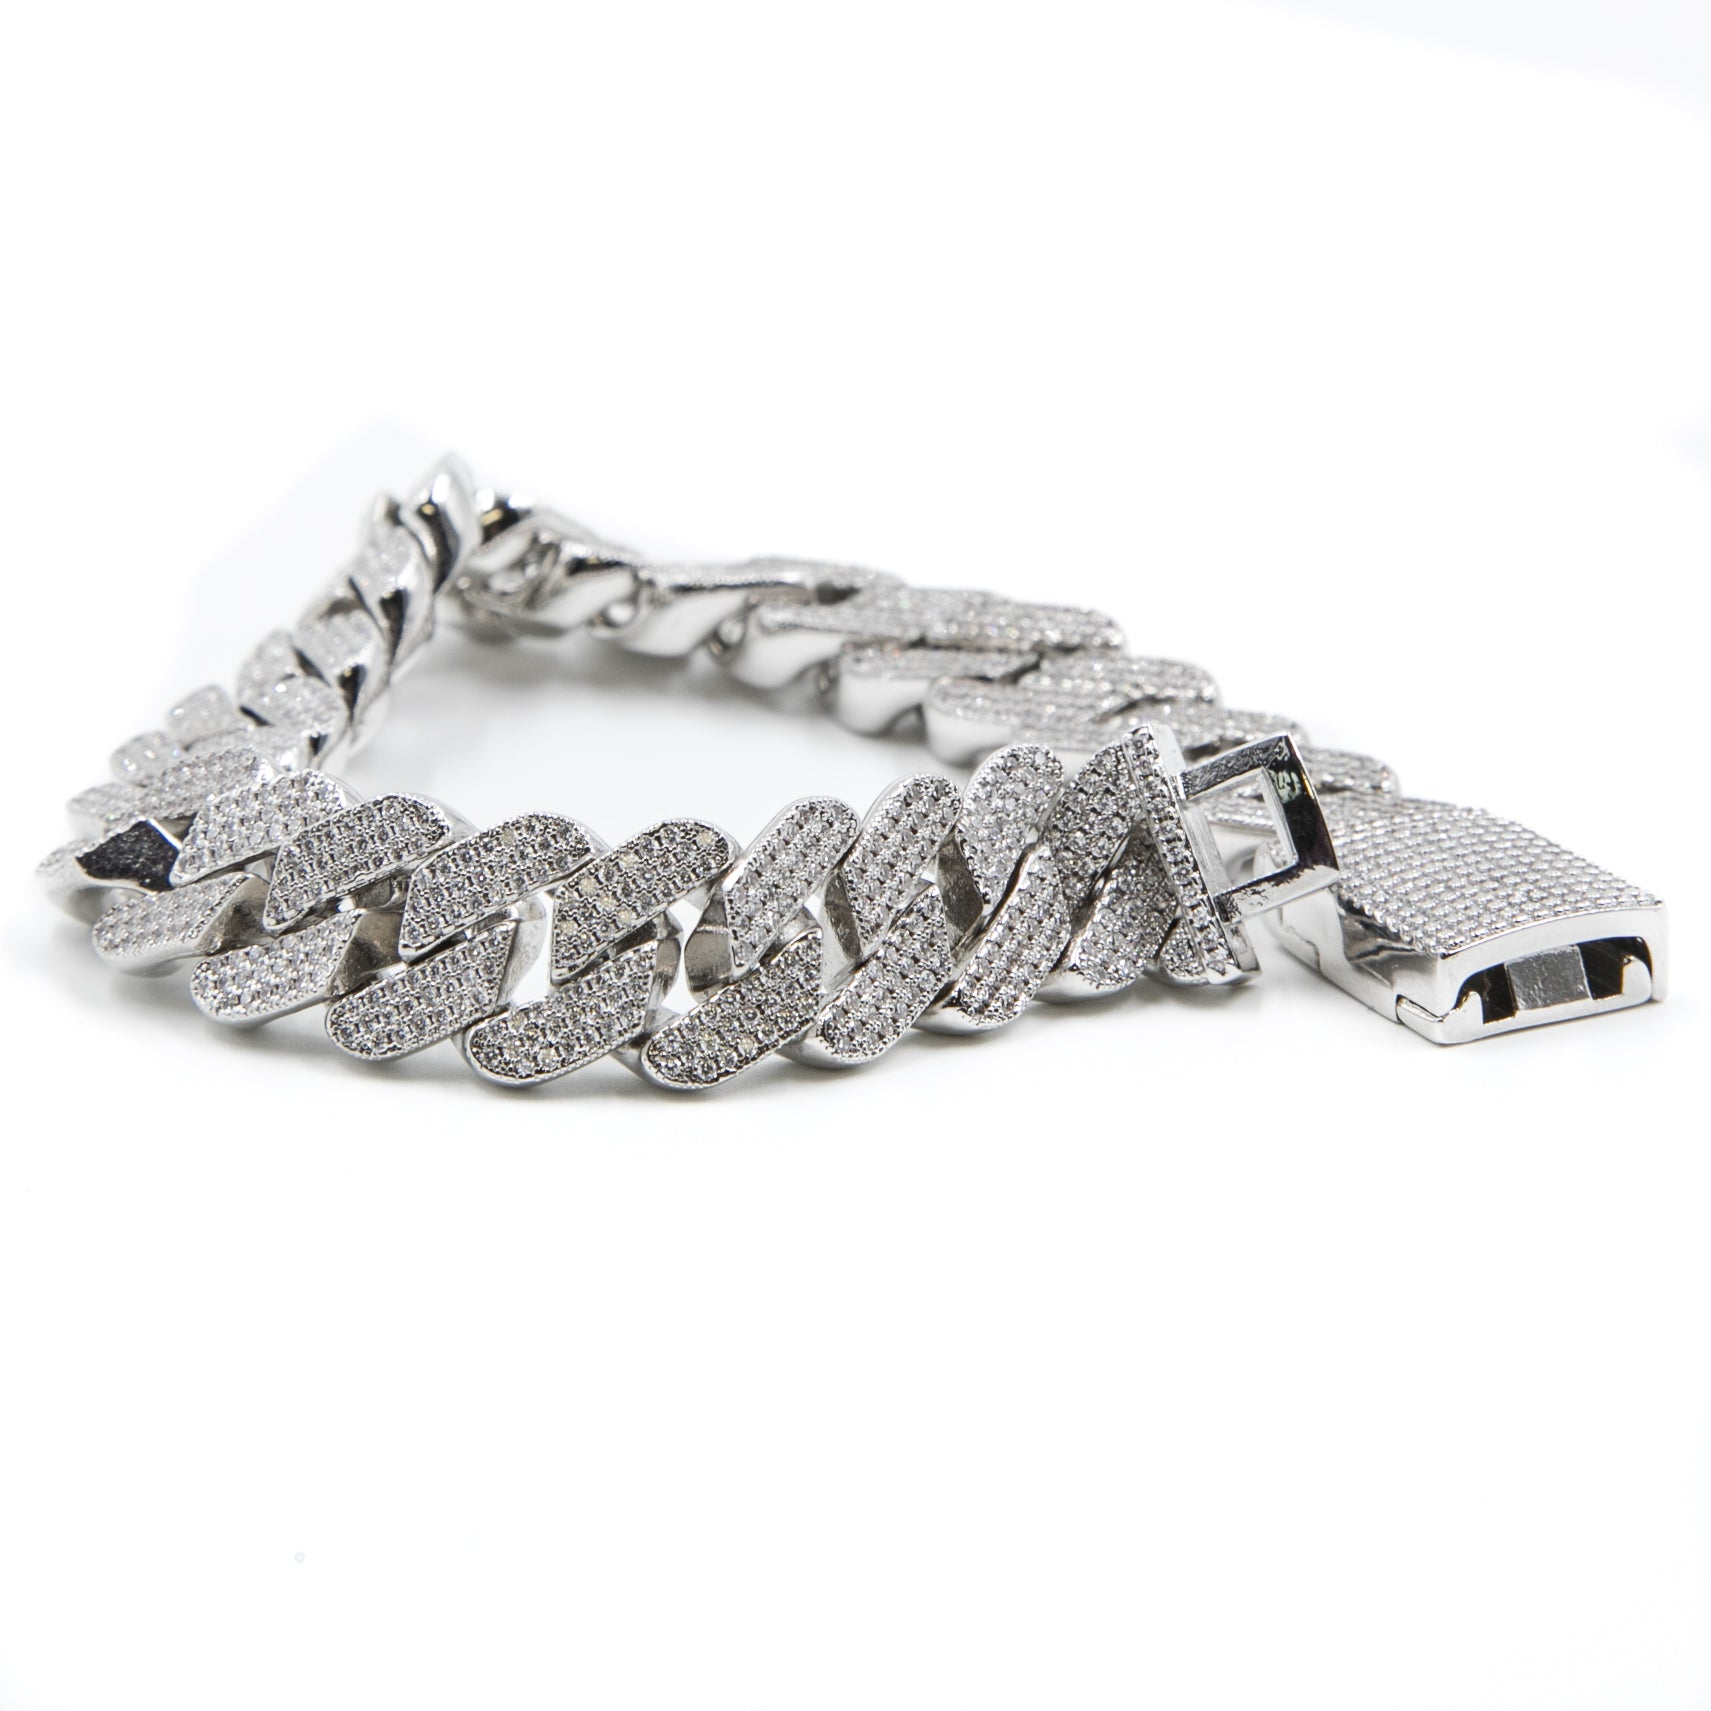 Studded Prong Set Cuban Link Bracelet - Silver - ACCESSORIES, Golden Gilt, SNEAKER STUDIO, GOLDEN GILT, DESIGN BY TSS